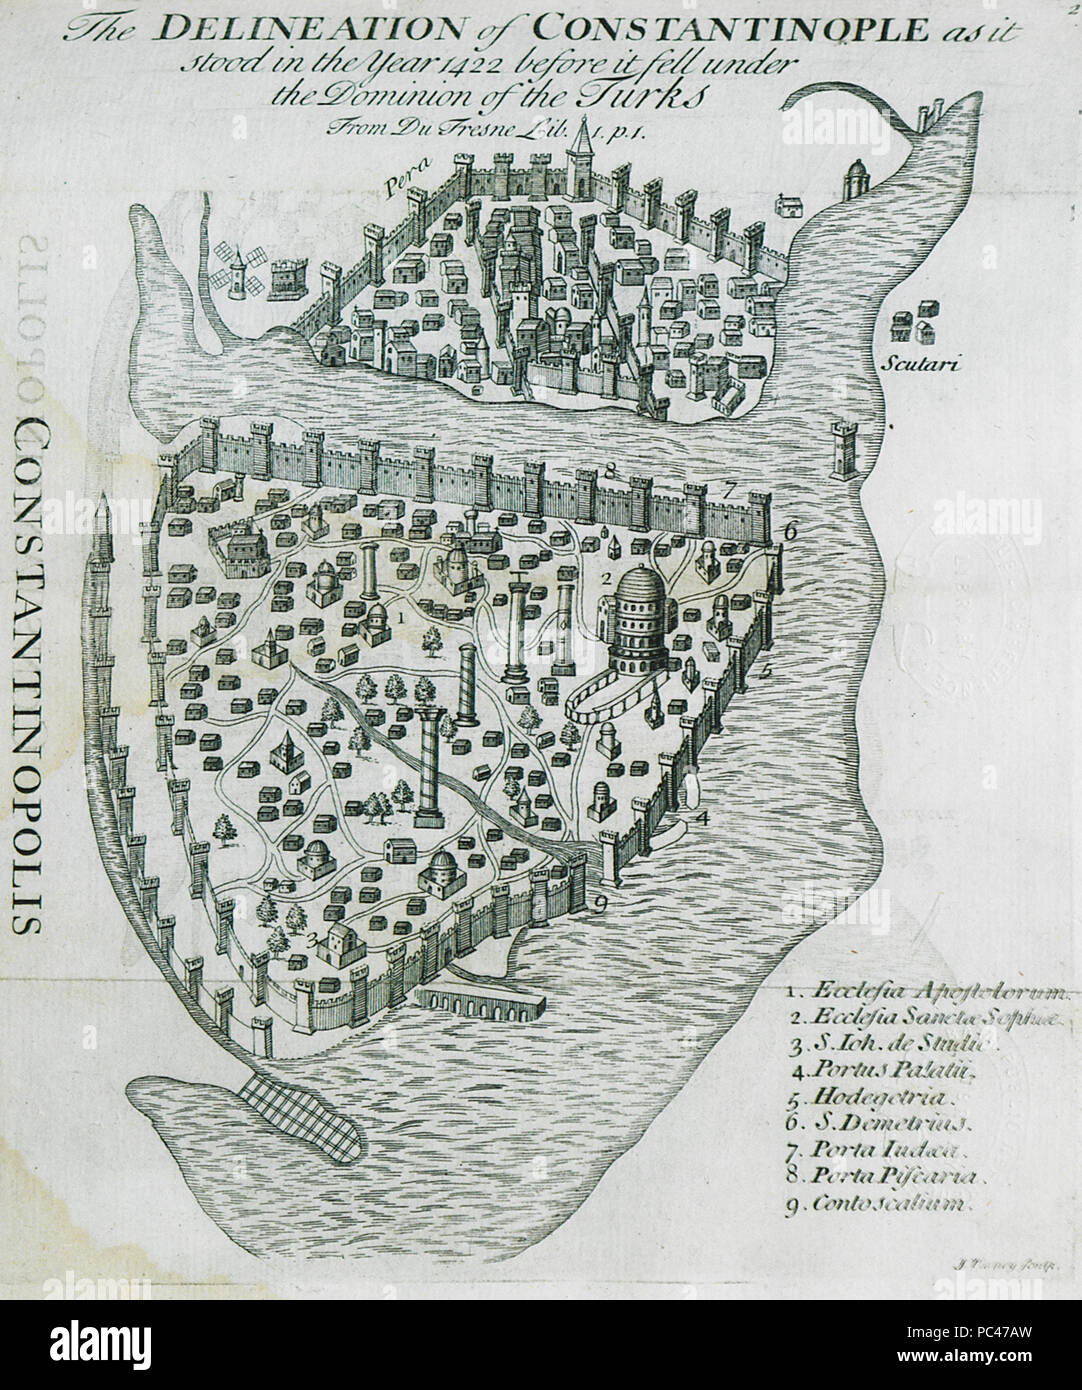 594 The delineation of Constantinople, as it stood in the year 1422 before it fell under the dominion of the Turks From du F - Gilles Pierre - 1729 - Stock Image